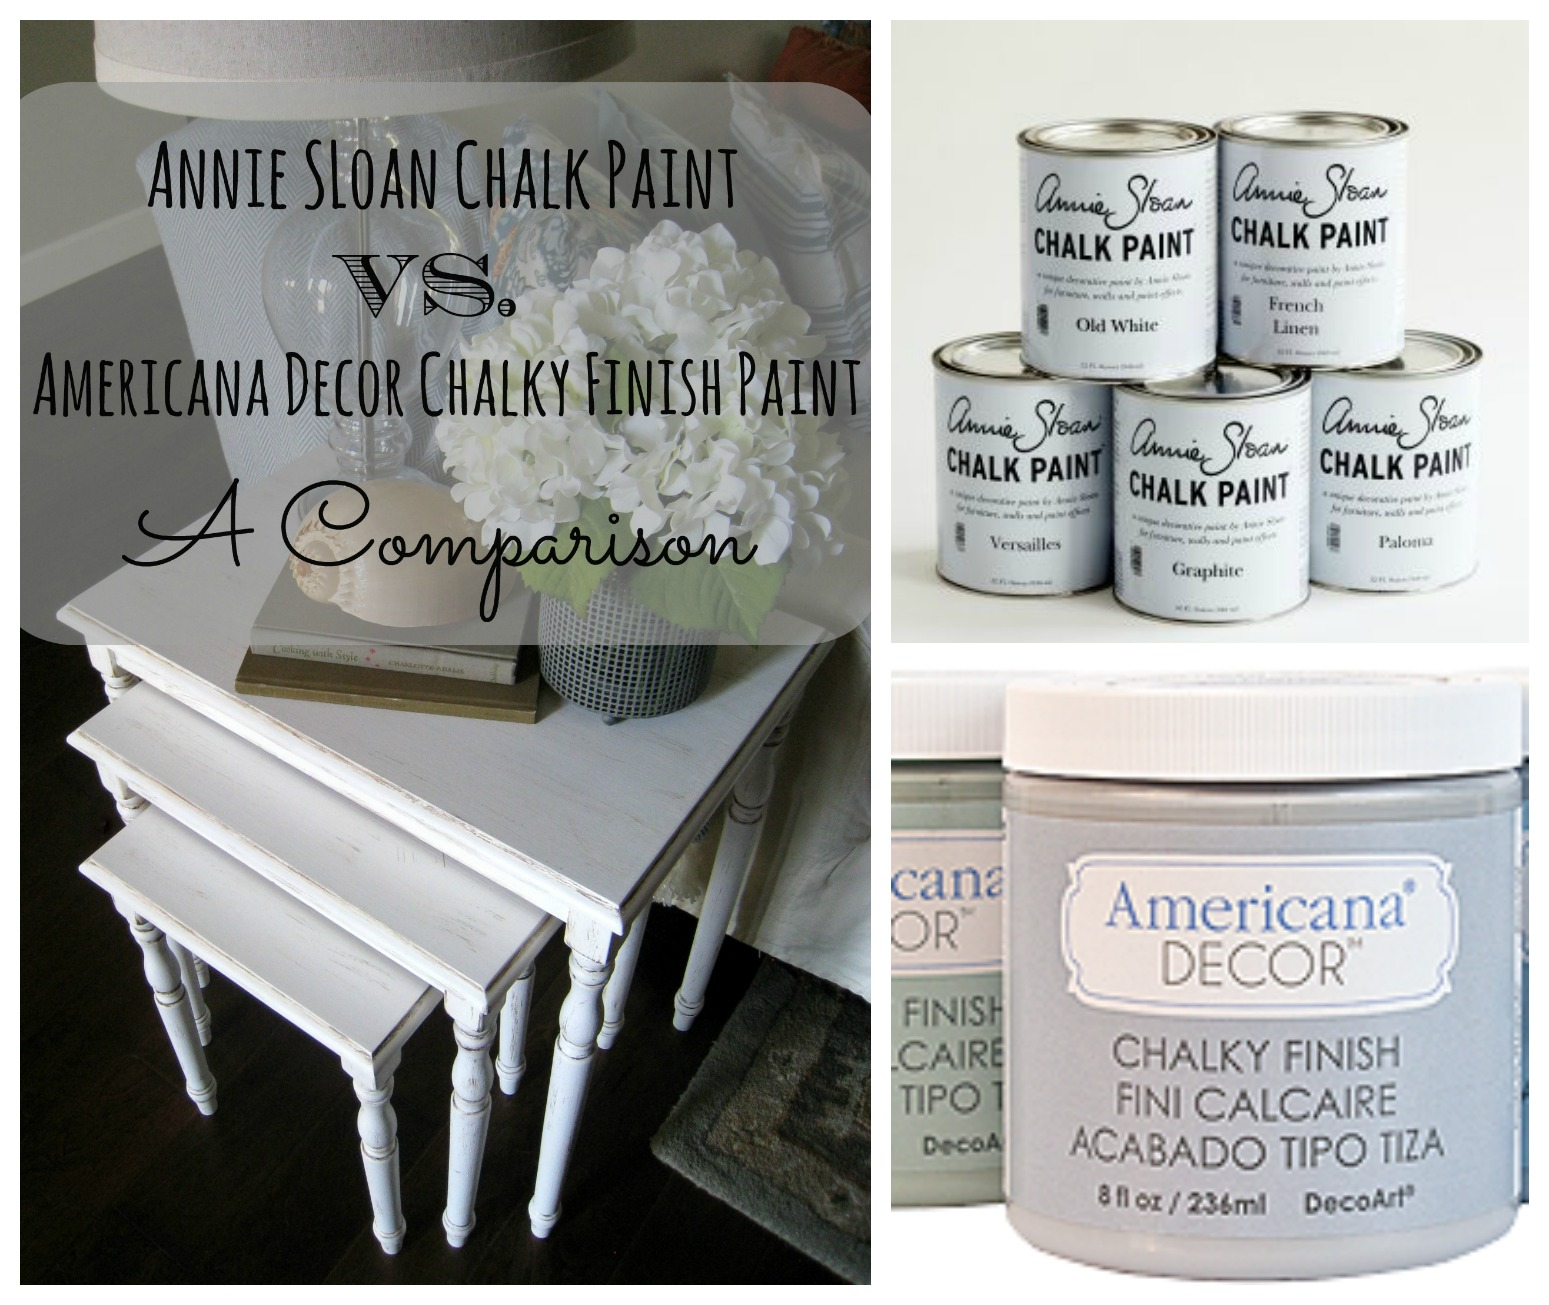 Americana Decor Chalky Finish Paint Reviews Home